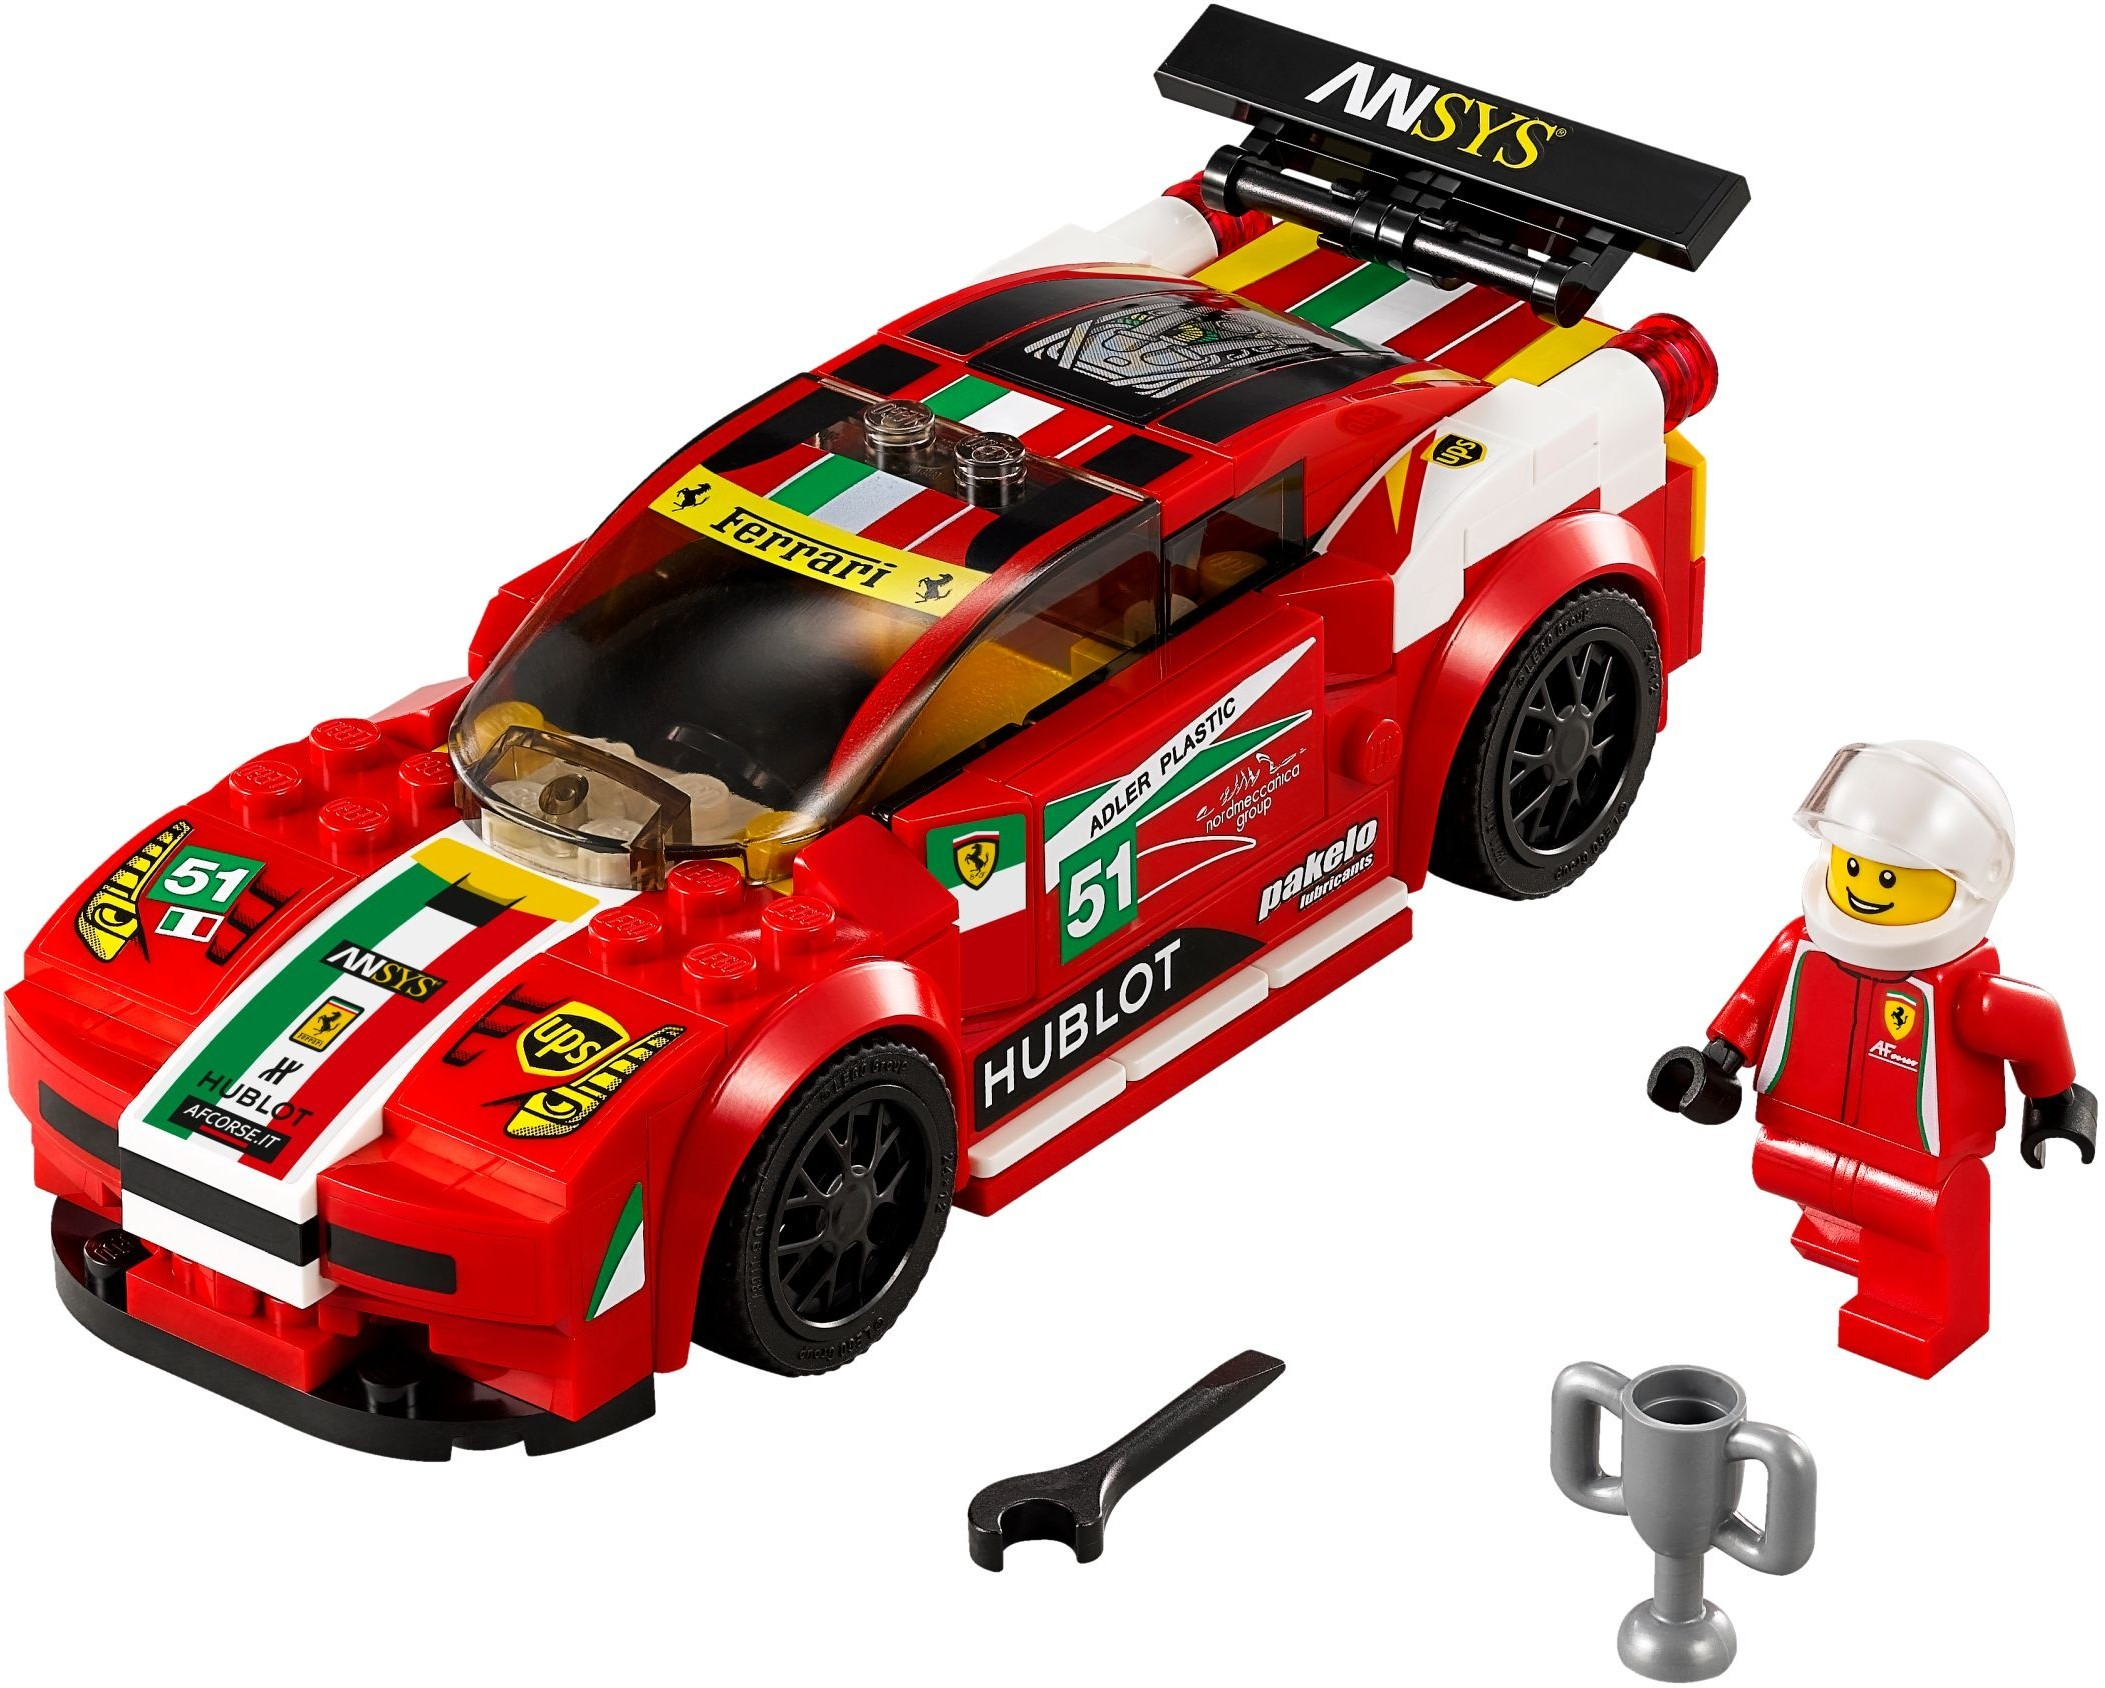 Lego Speed Champions Are Here And We Want One Of Each Set